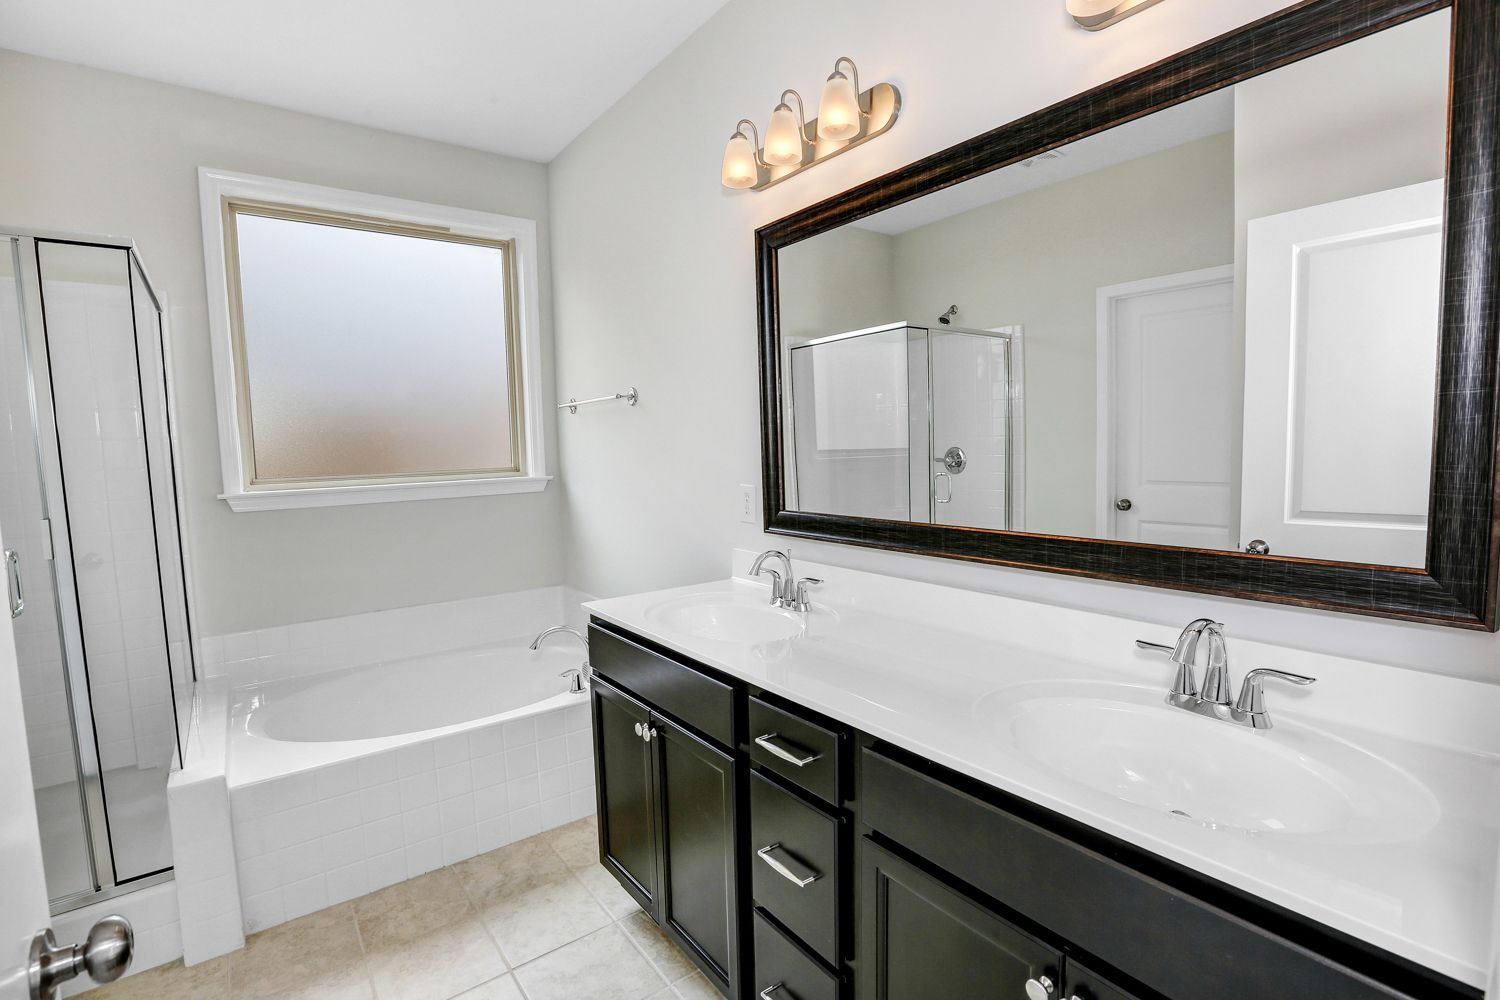 Bathroom featured in The Chadwick By Goodall Homes in Huntsville, AL